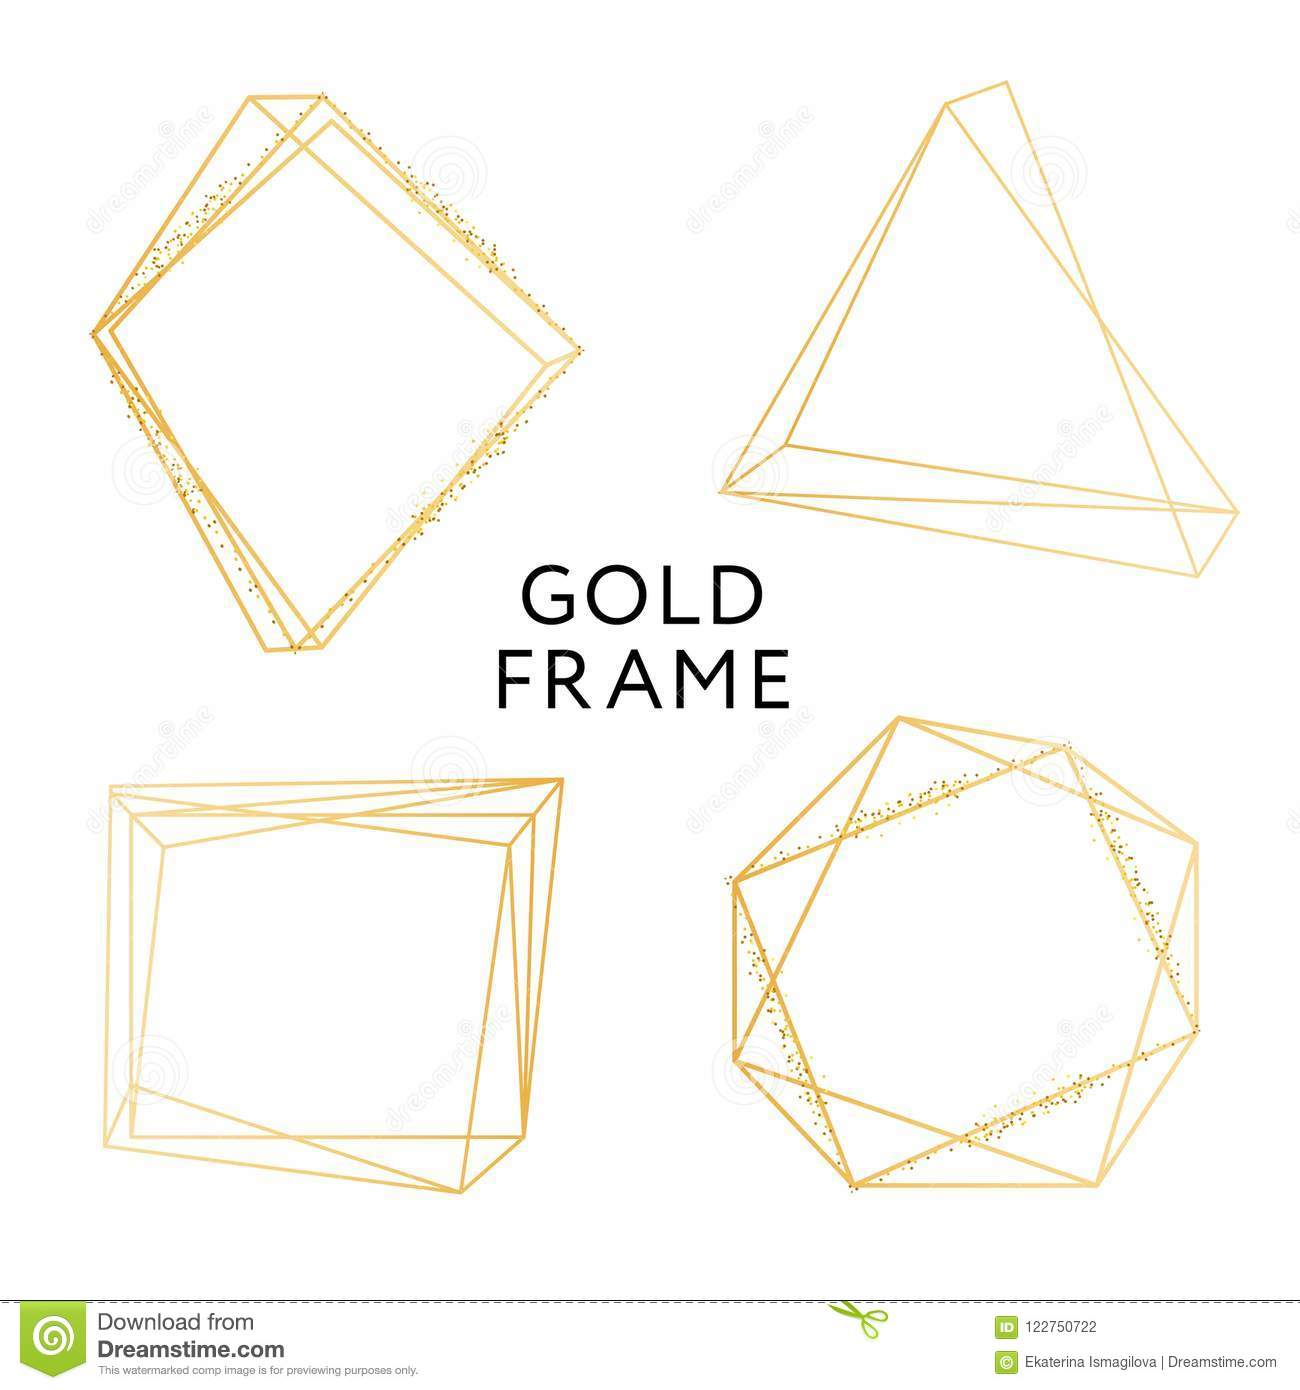 763838b20fb Gold Frame Geometric Shape Minimalism Vector Design Banner Golden Set. More  similar stock illustrations